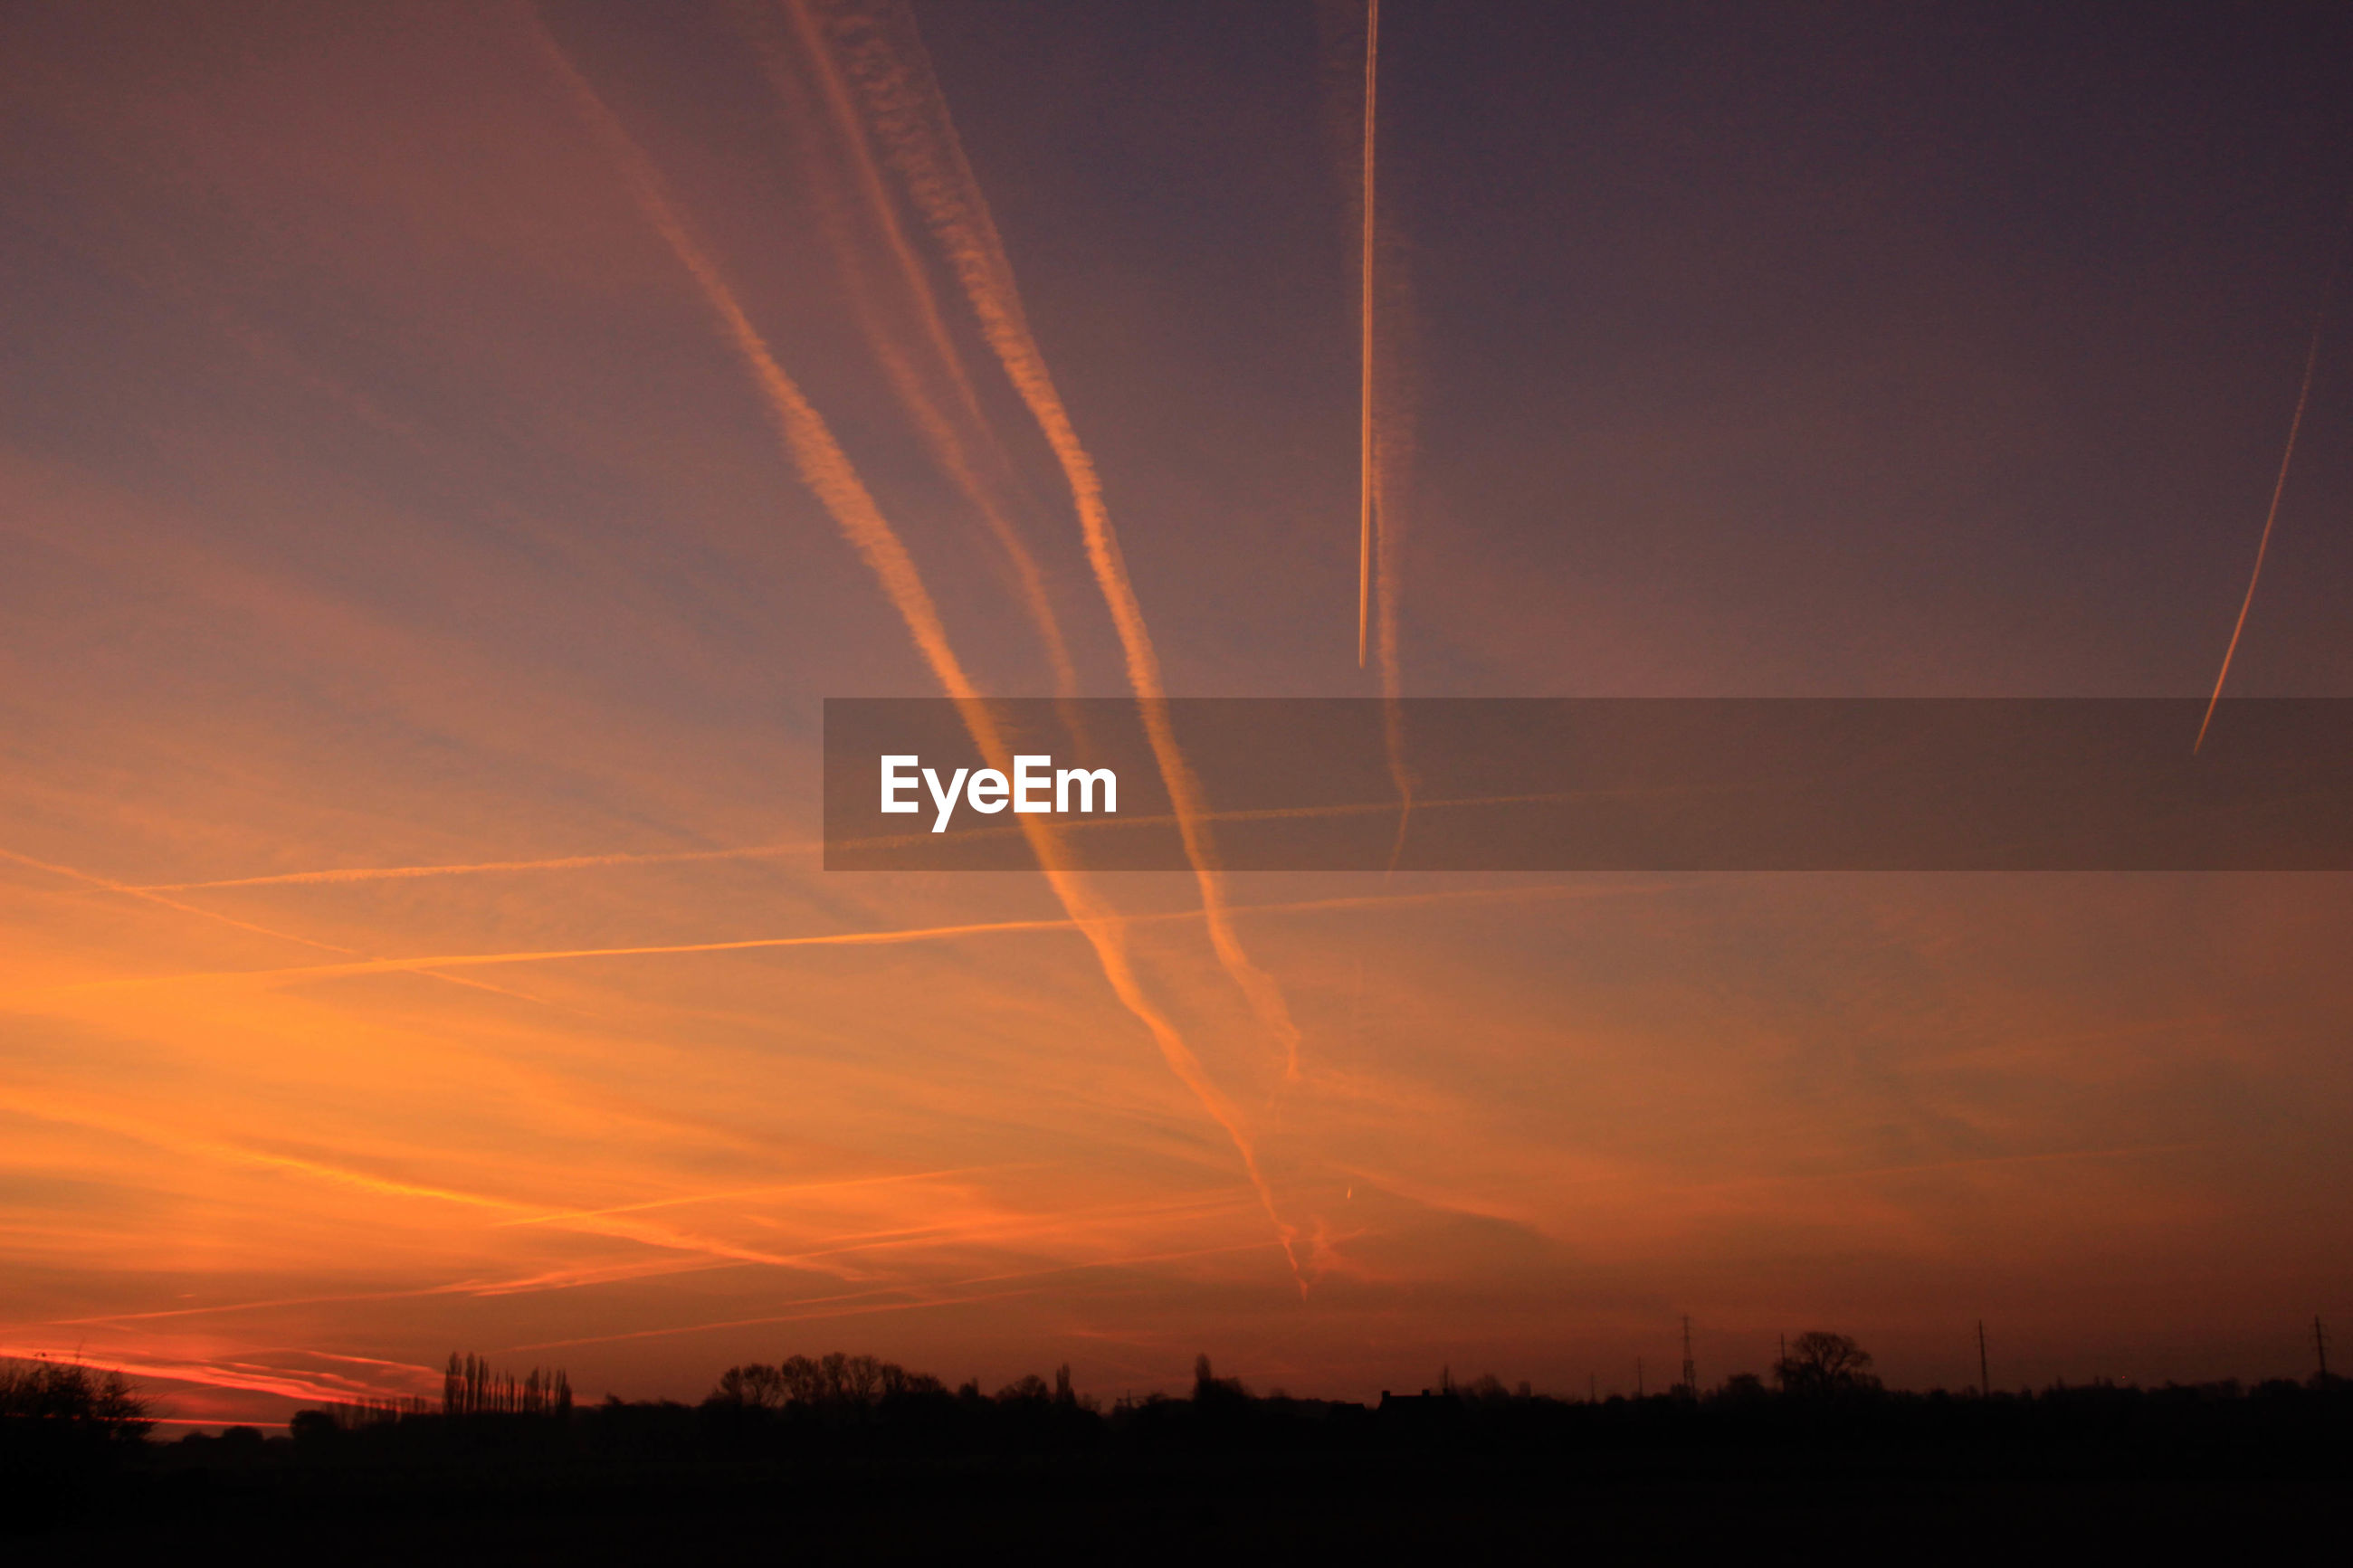 LOW ANGLE VIEW OF SILHOUETTE VAPOR TRAILS IN SKY